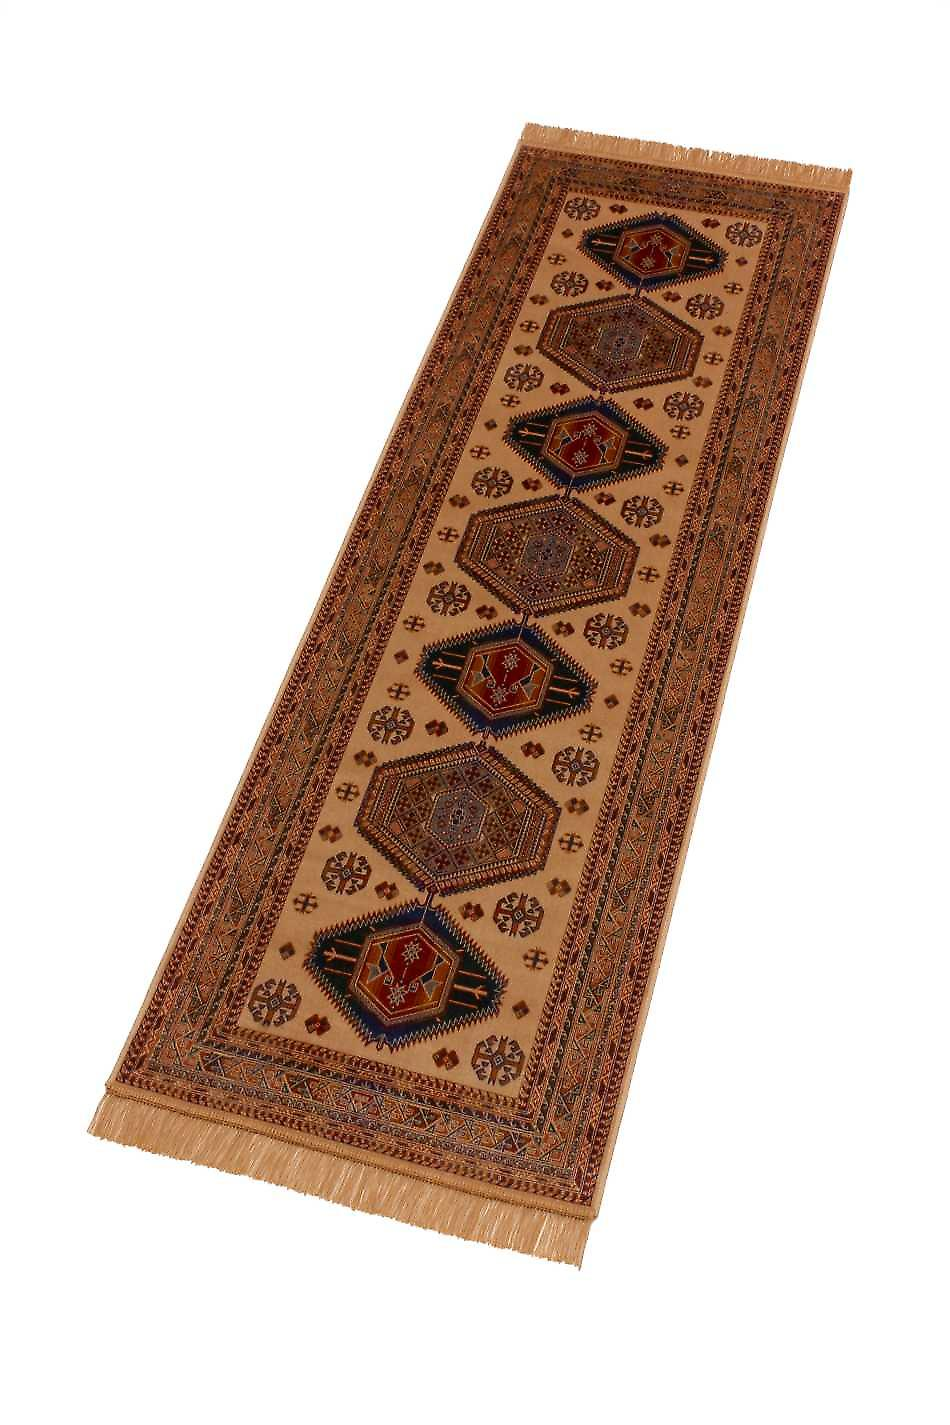 Afghan Kazak Artsilk Faux Silk Effect Hall Runner Rugs 9379/4